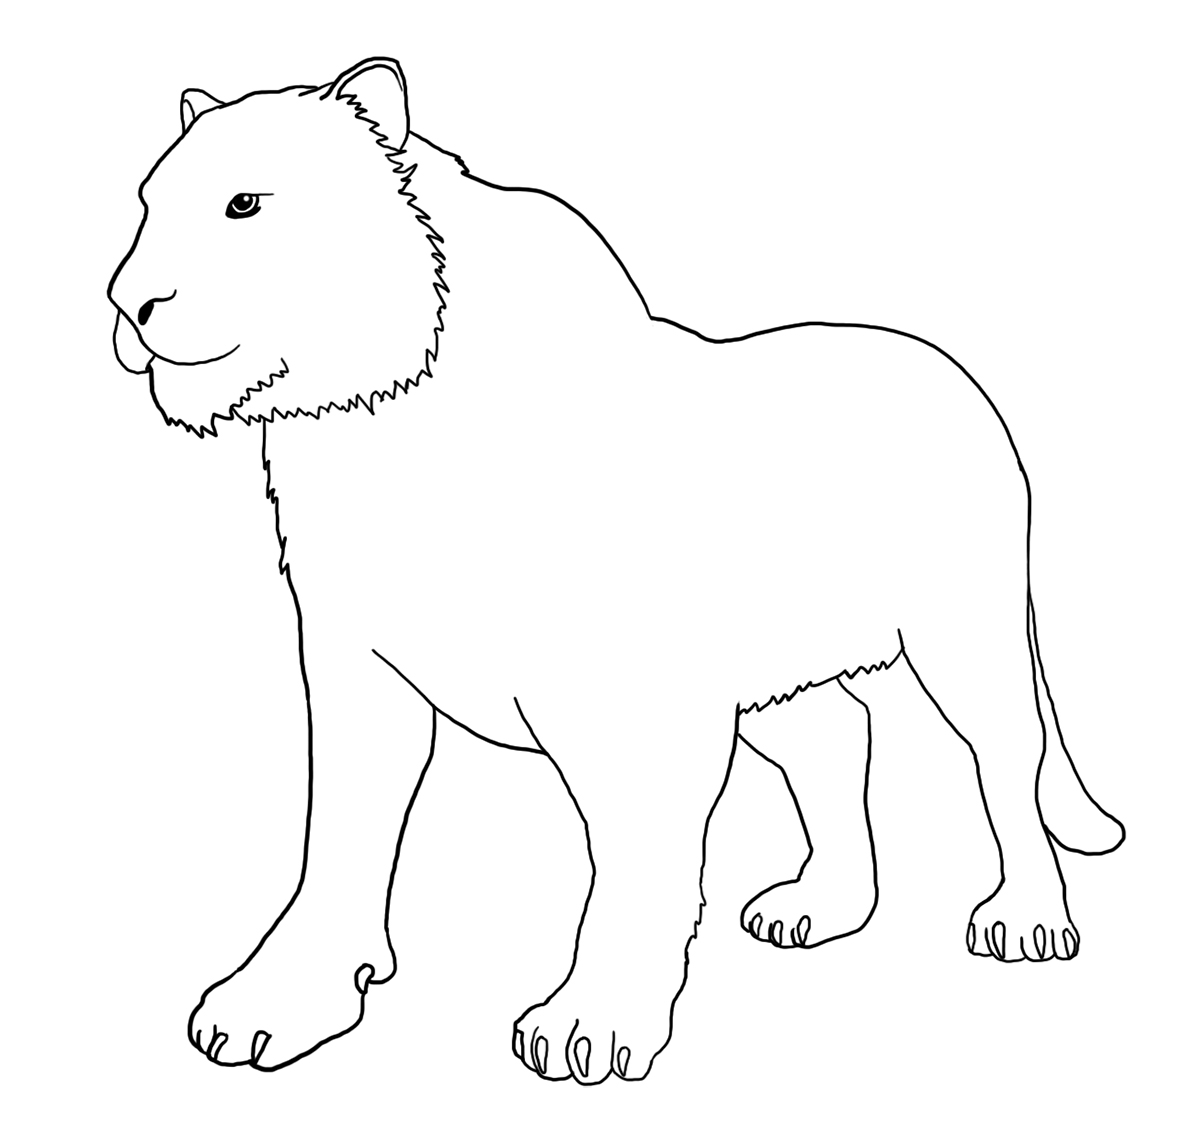 tiger without stripes for coloring